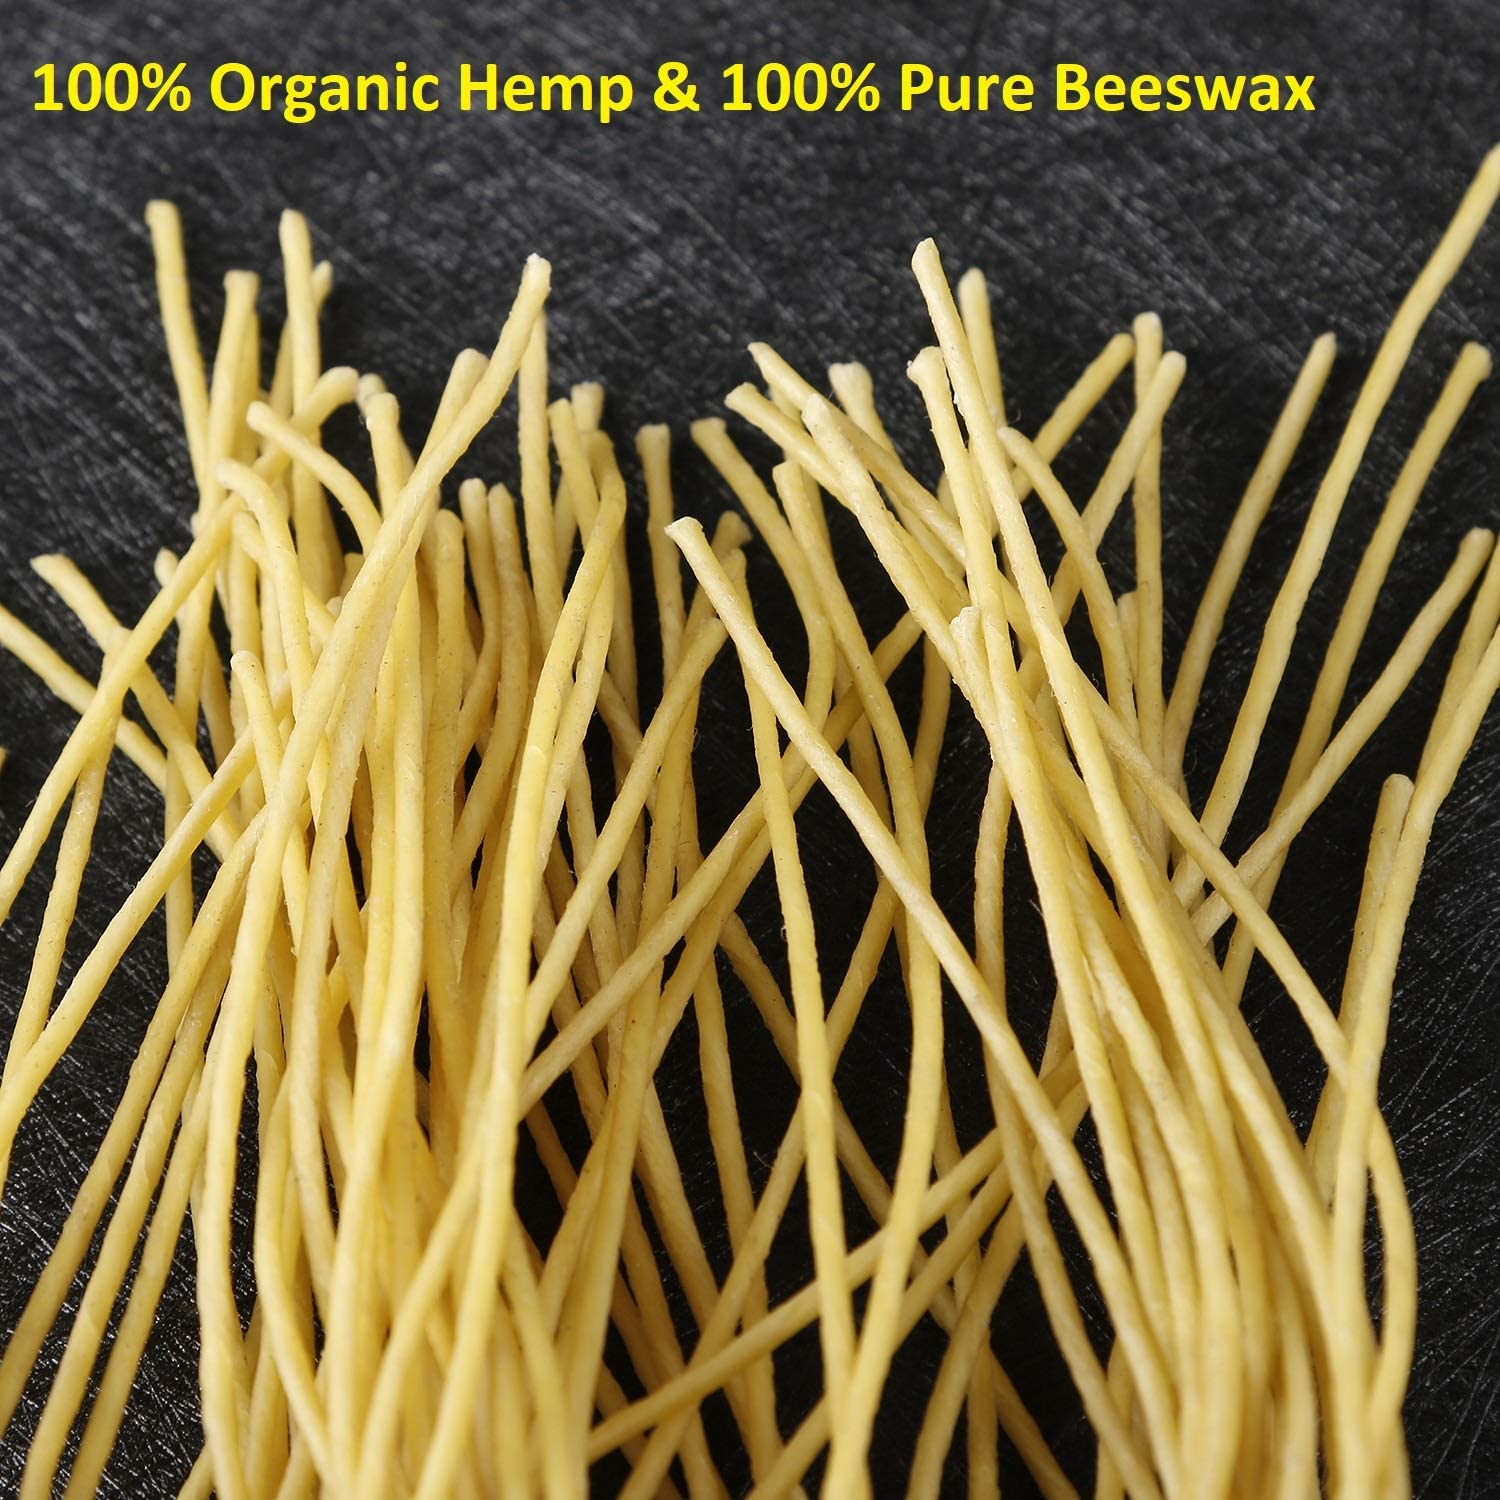 Pre-Waxed by 100/% Natural Beeswax /& Tabbed Beeswax Wicks for Candle Making. MILIVIXAY 10 Inch Hemp Wick,100 Piece Hemp Candle Wicks